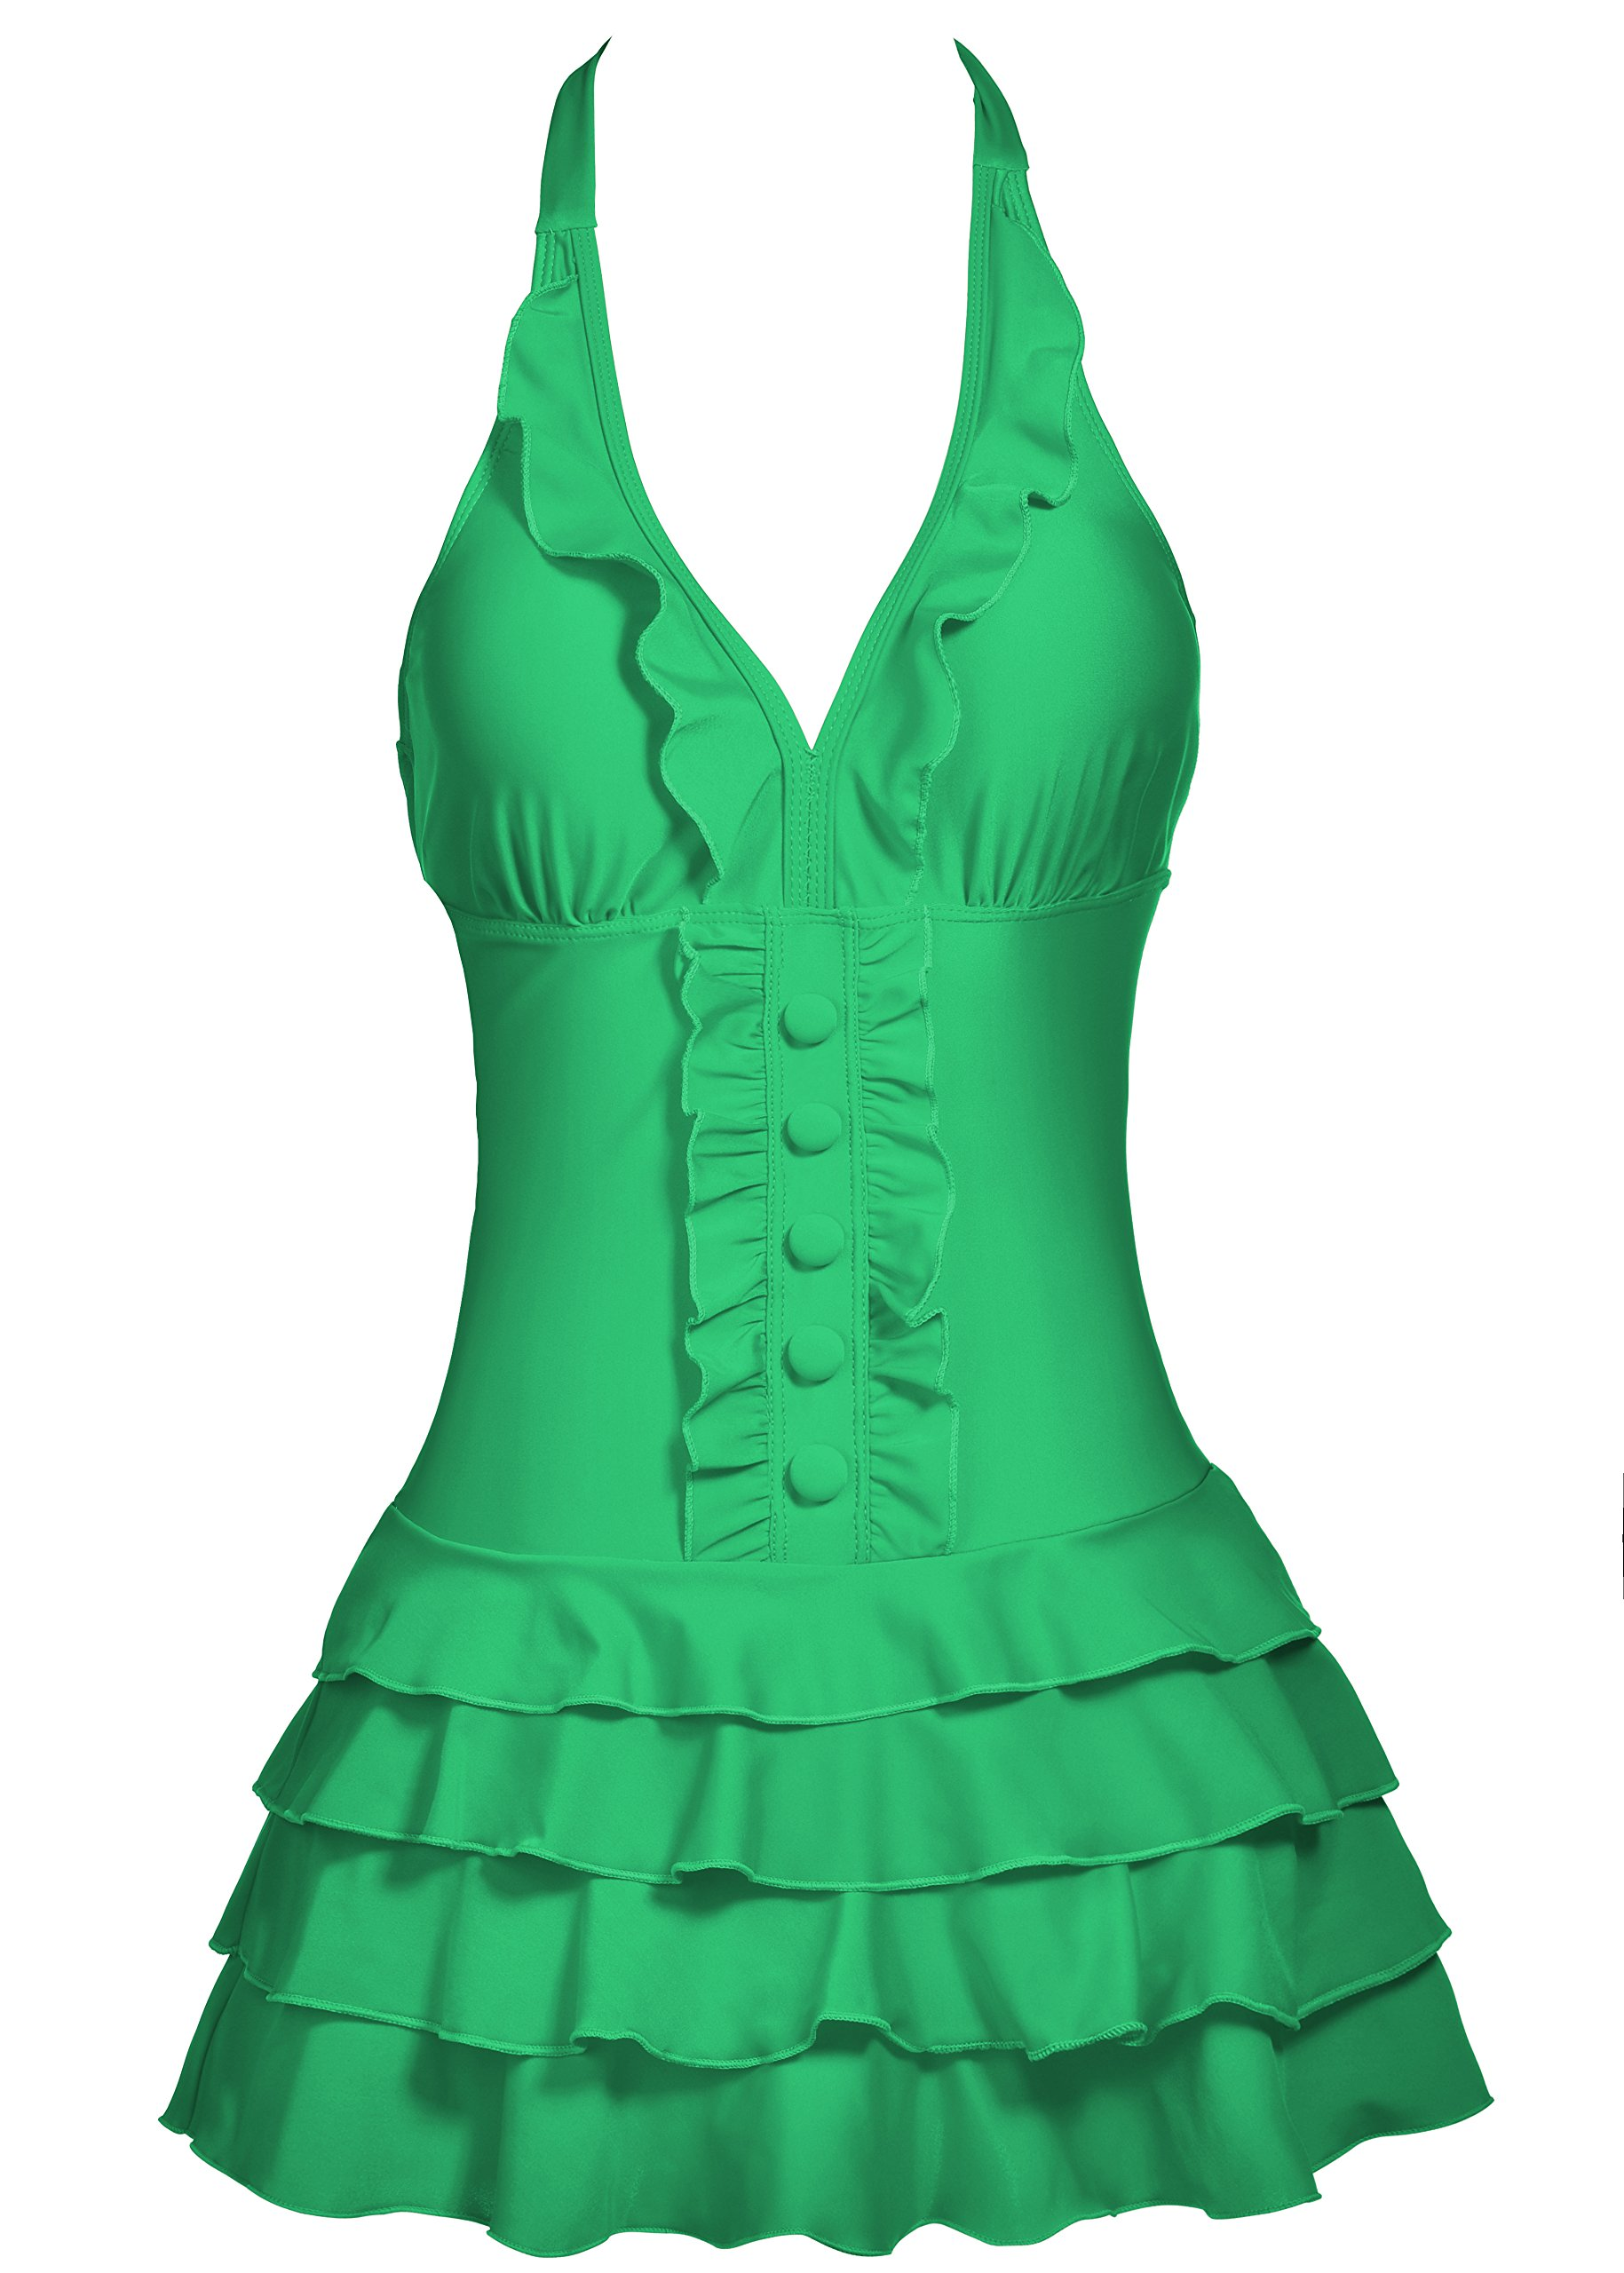 swimwear crossover tummy control top style swimdress vintage swimsuits designer swimdress deep v neck one piece high waist push up swimdress,Springgreen,XXLarge / 12 to 14